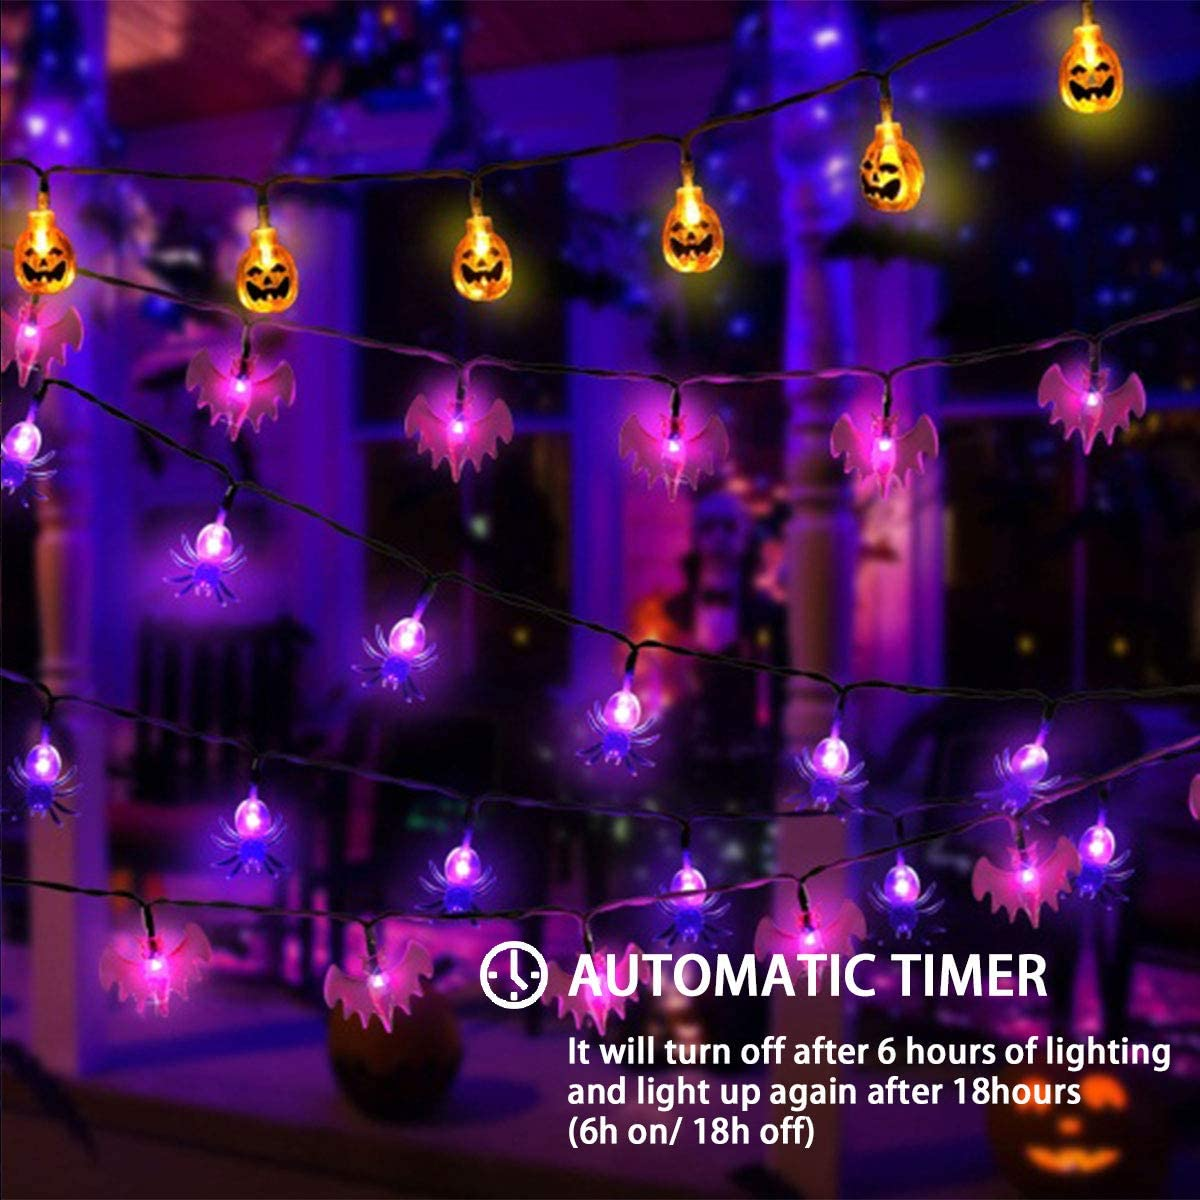 MAOYUE Halloween Lights Outdoor Halloween String Lights 3Pack 29.6ft 60 LED Pumpkin Spider Bat String Lights Battery Operated 8 Lighting Modes for Halloween Decorations Outdoor, Indoor, Porch